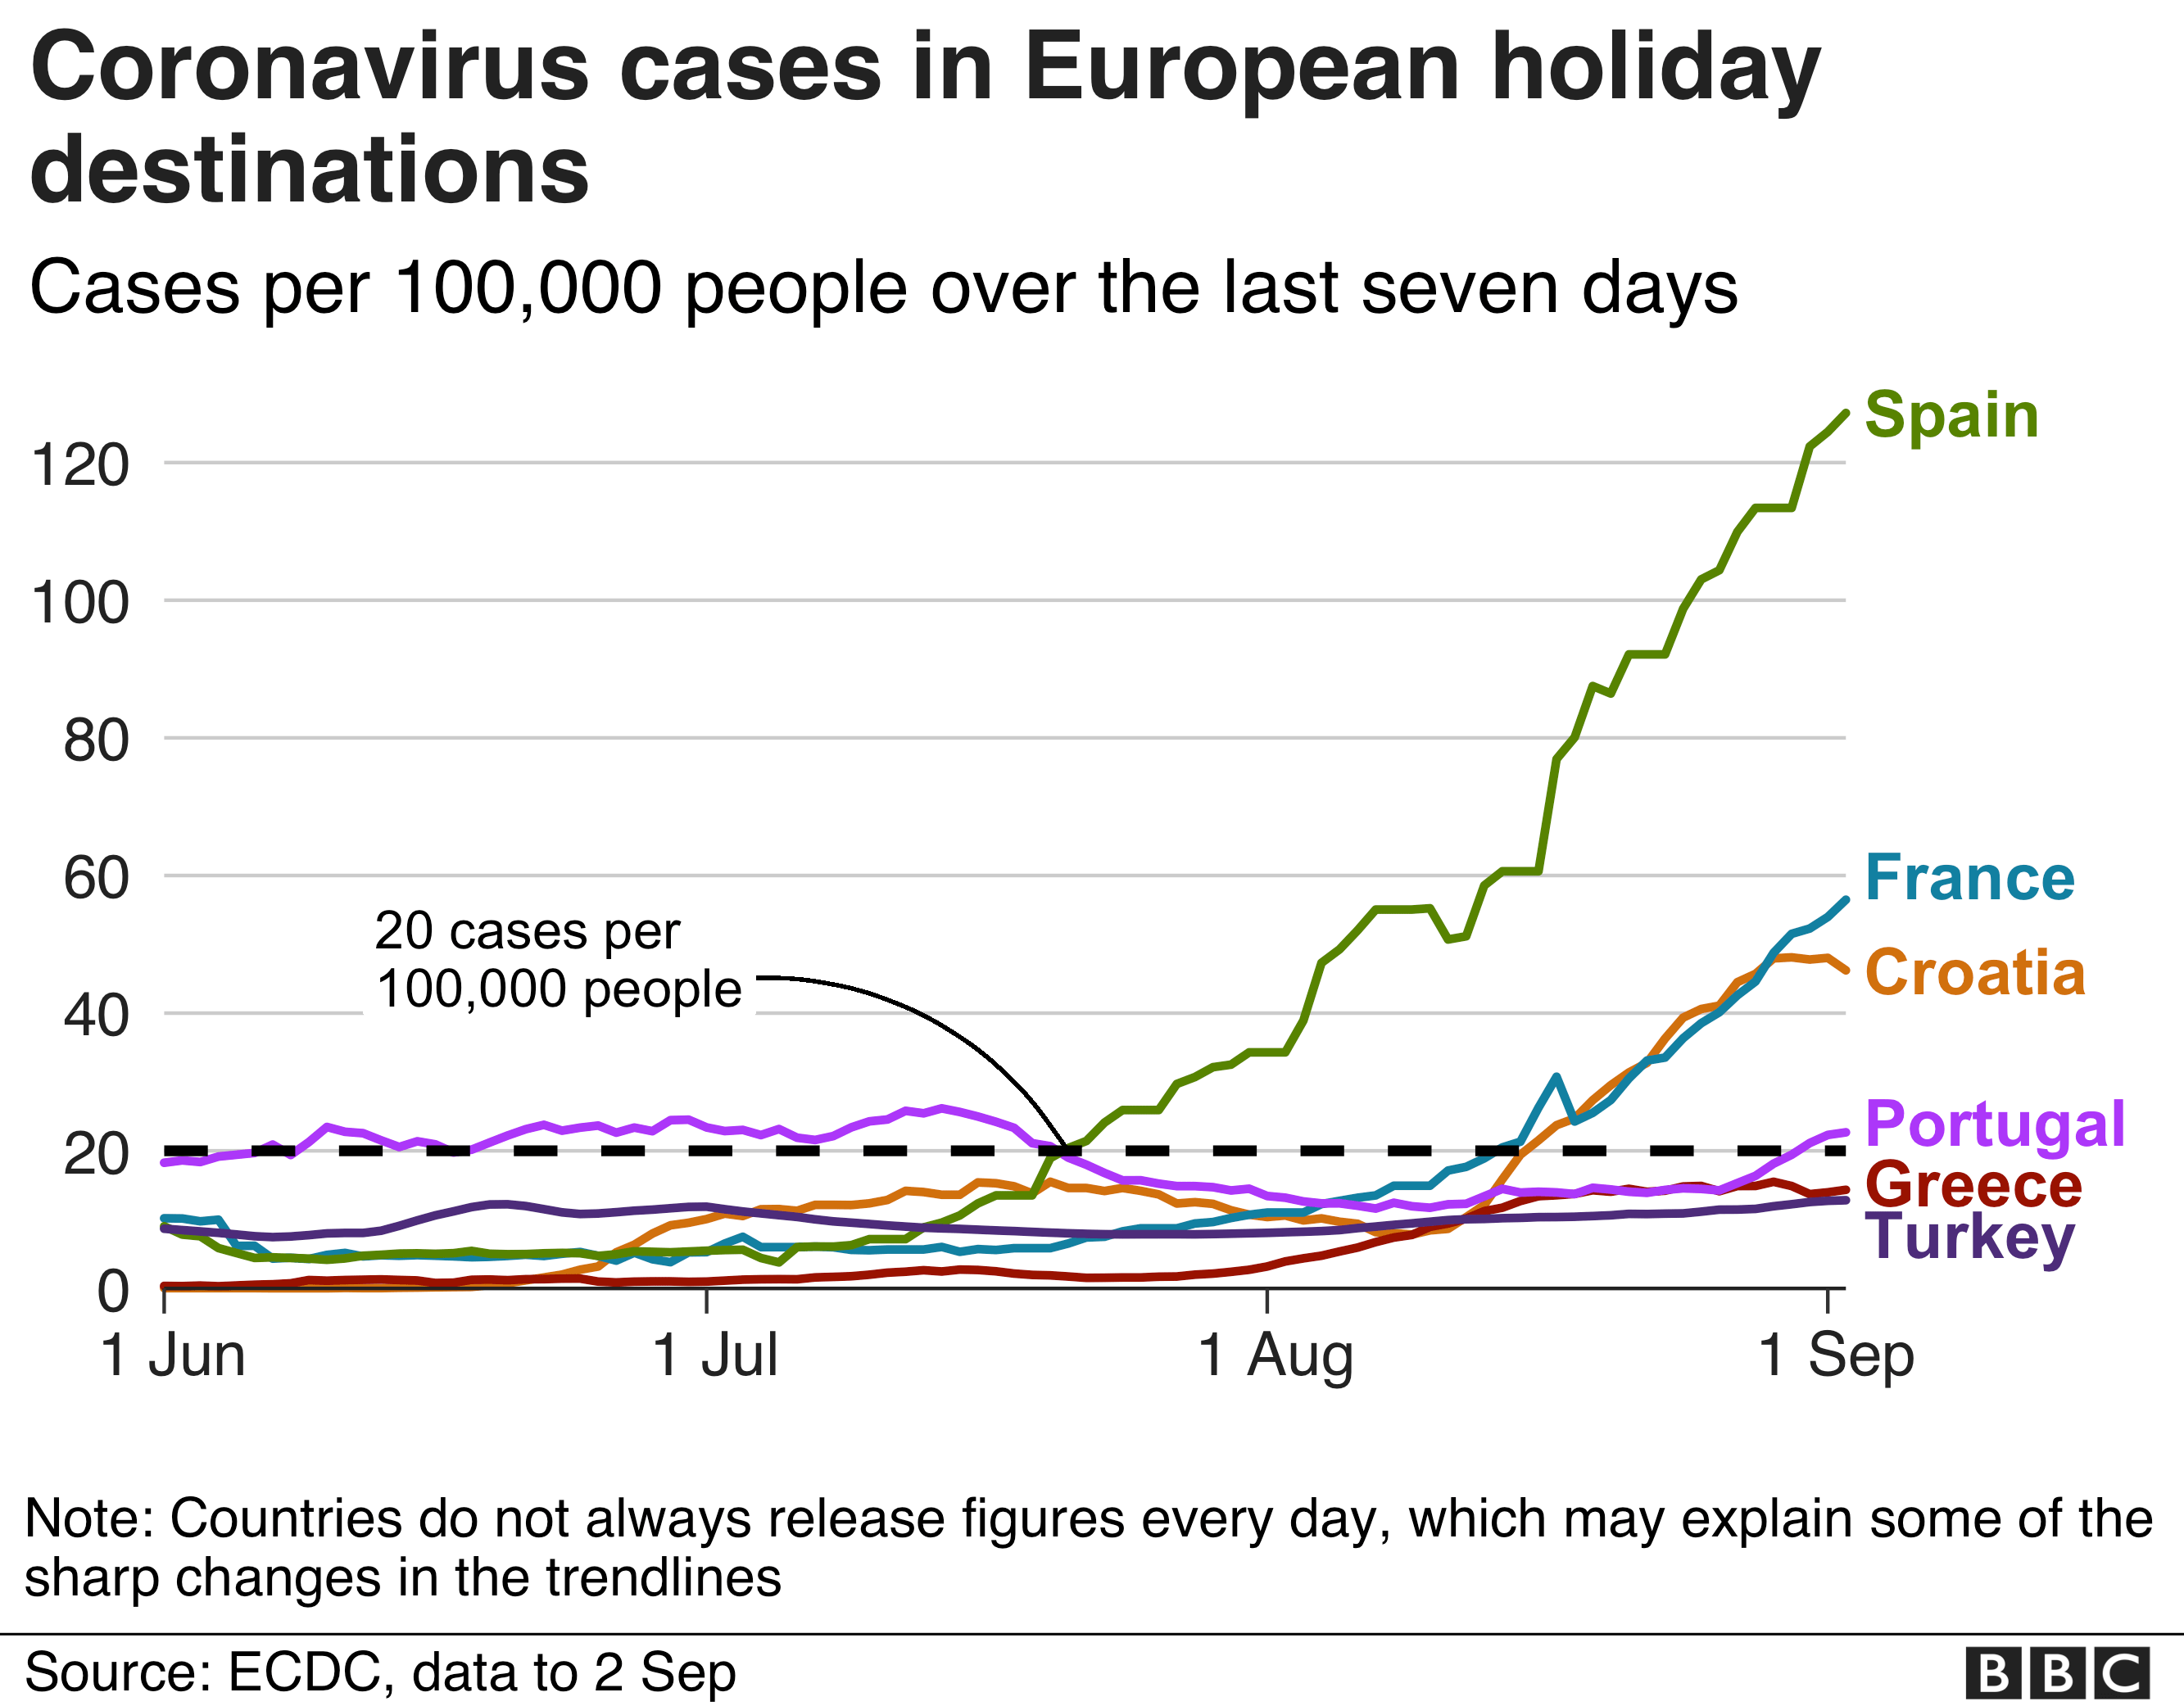 Chart showing coronavirus cases in major European holiday destinations